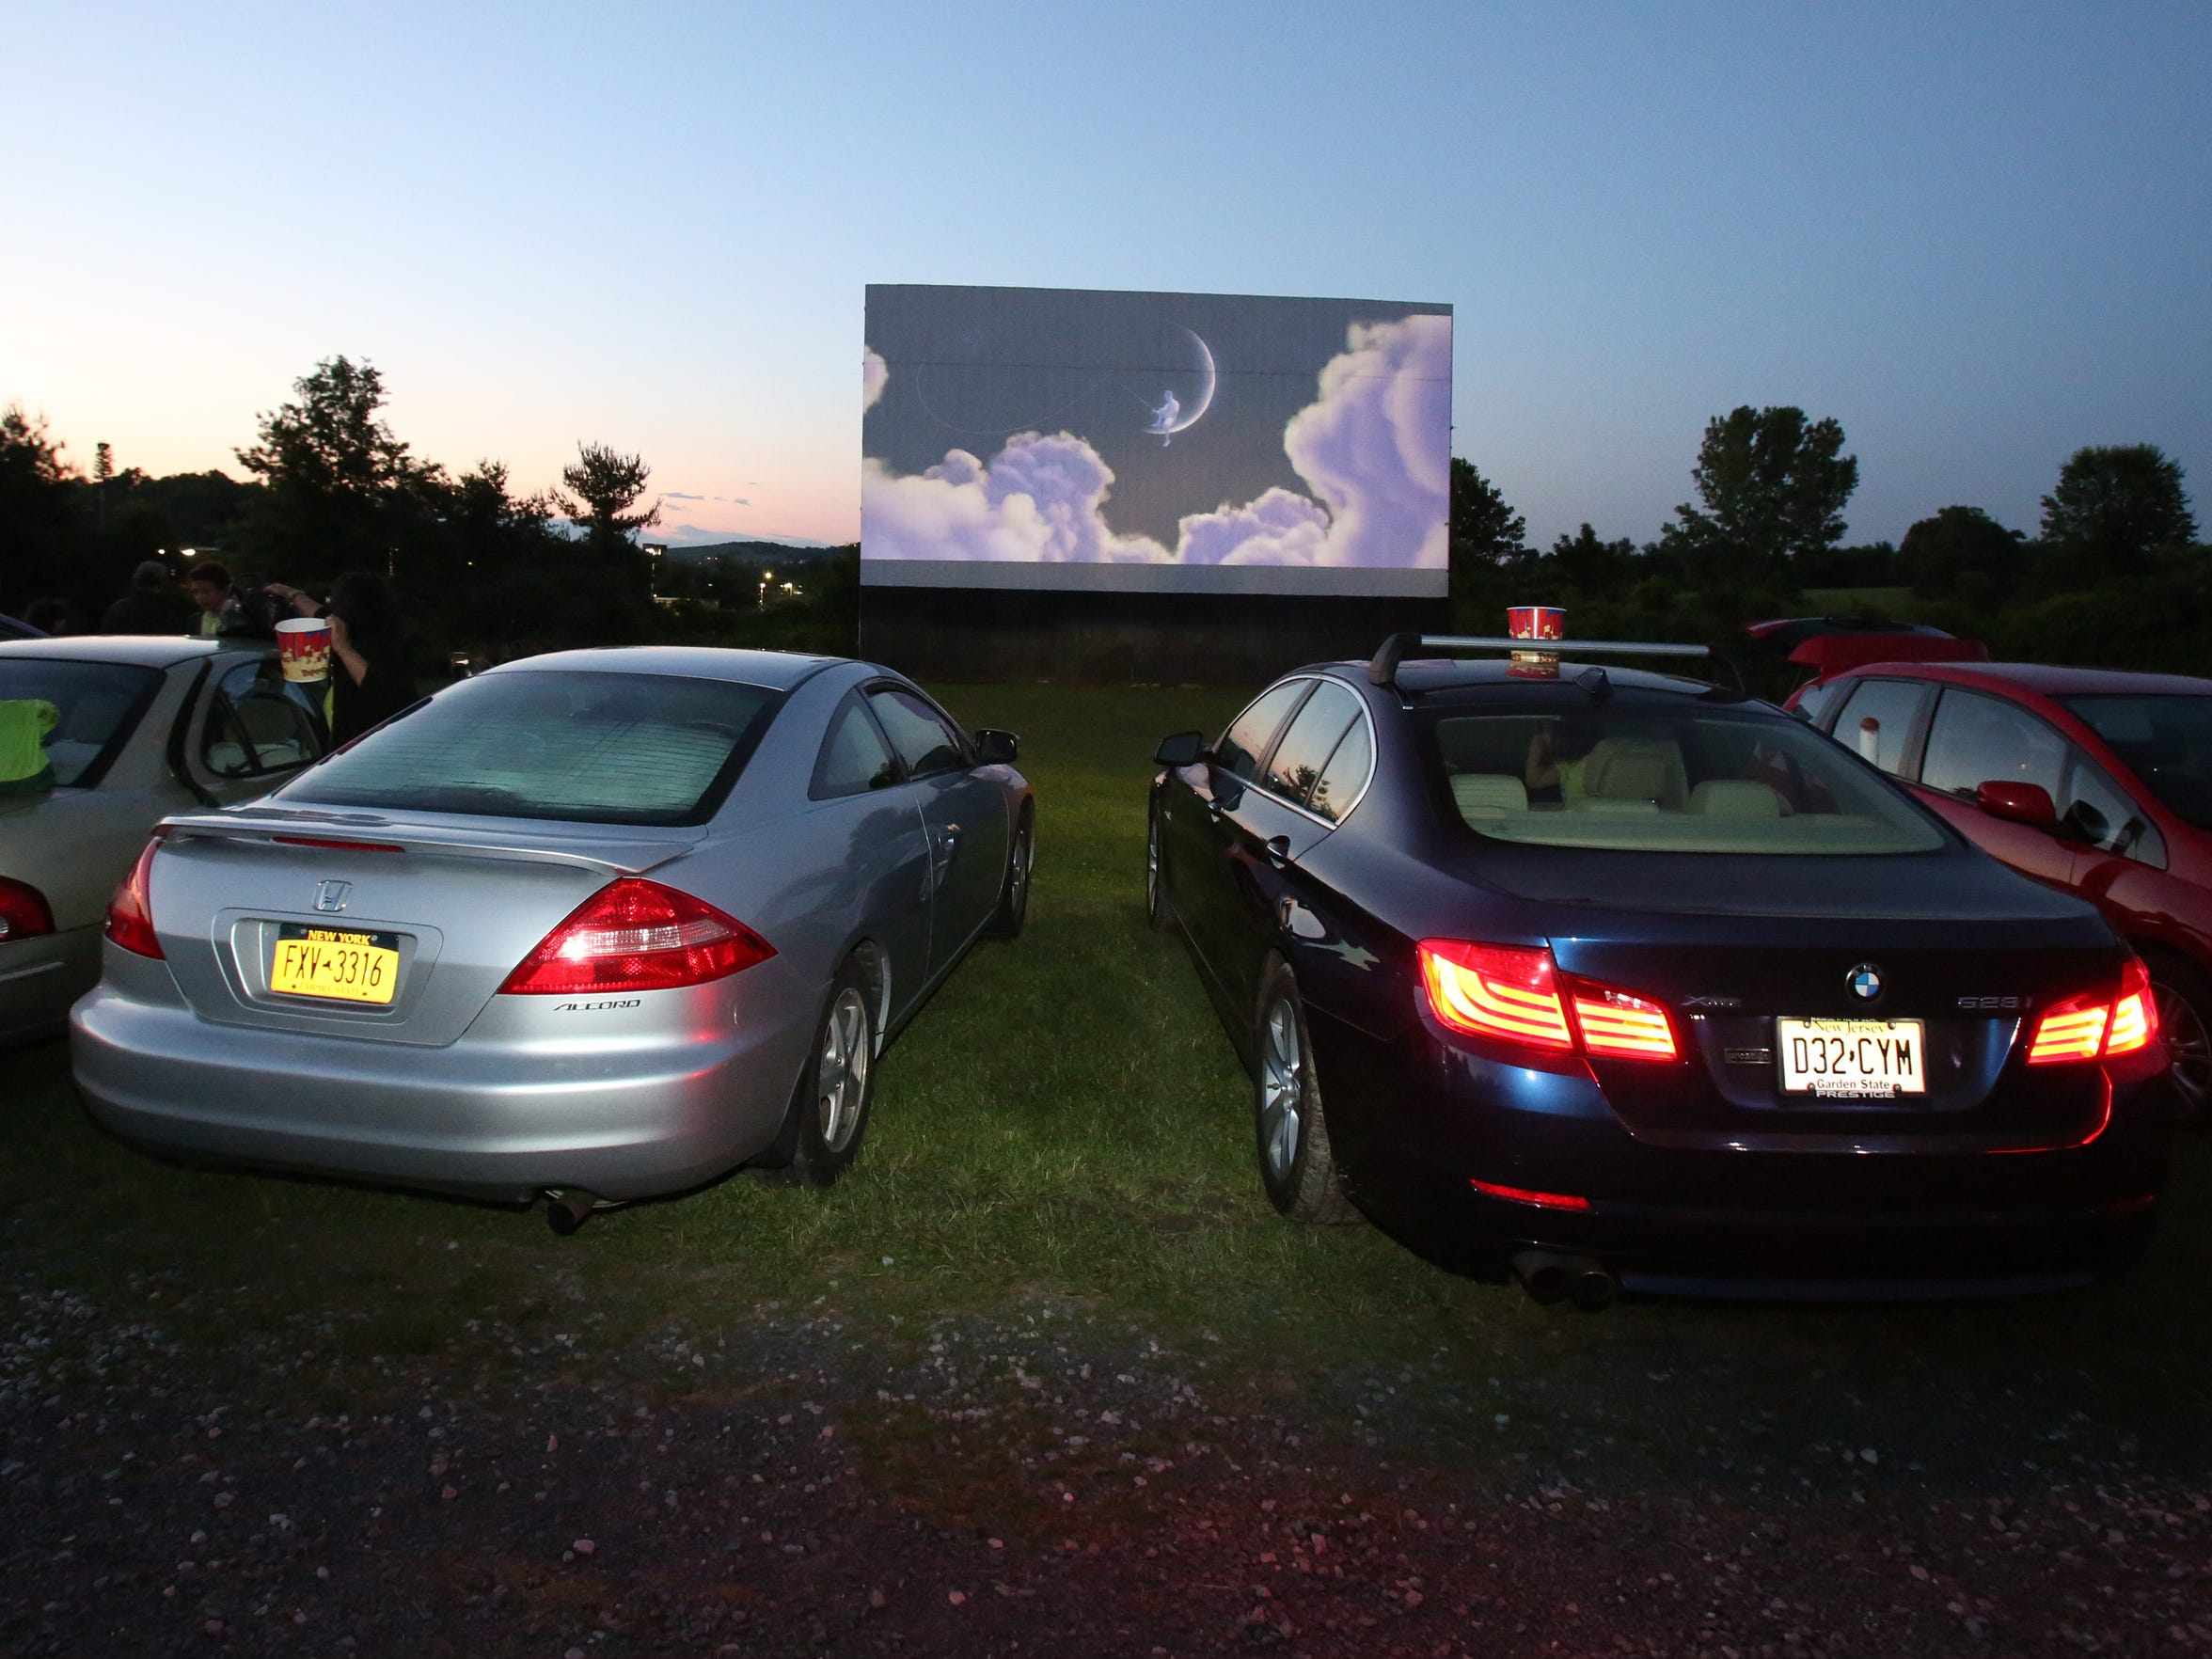 There's none in the Lower Hudson Valley, but several drive-in theaters await you just a bit to the north.